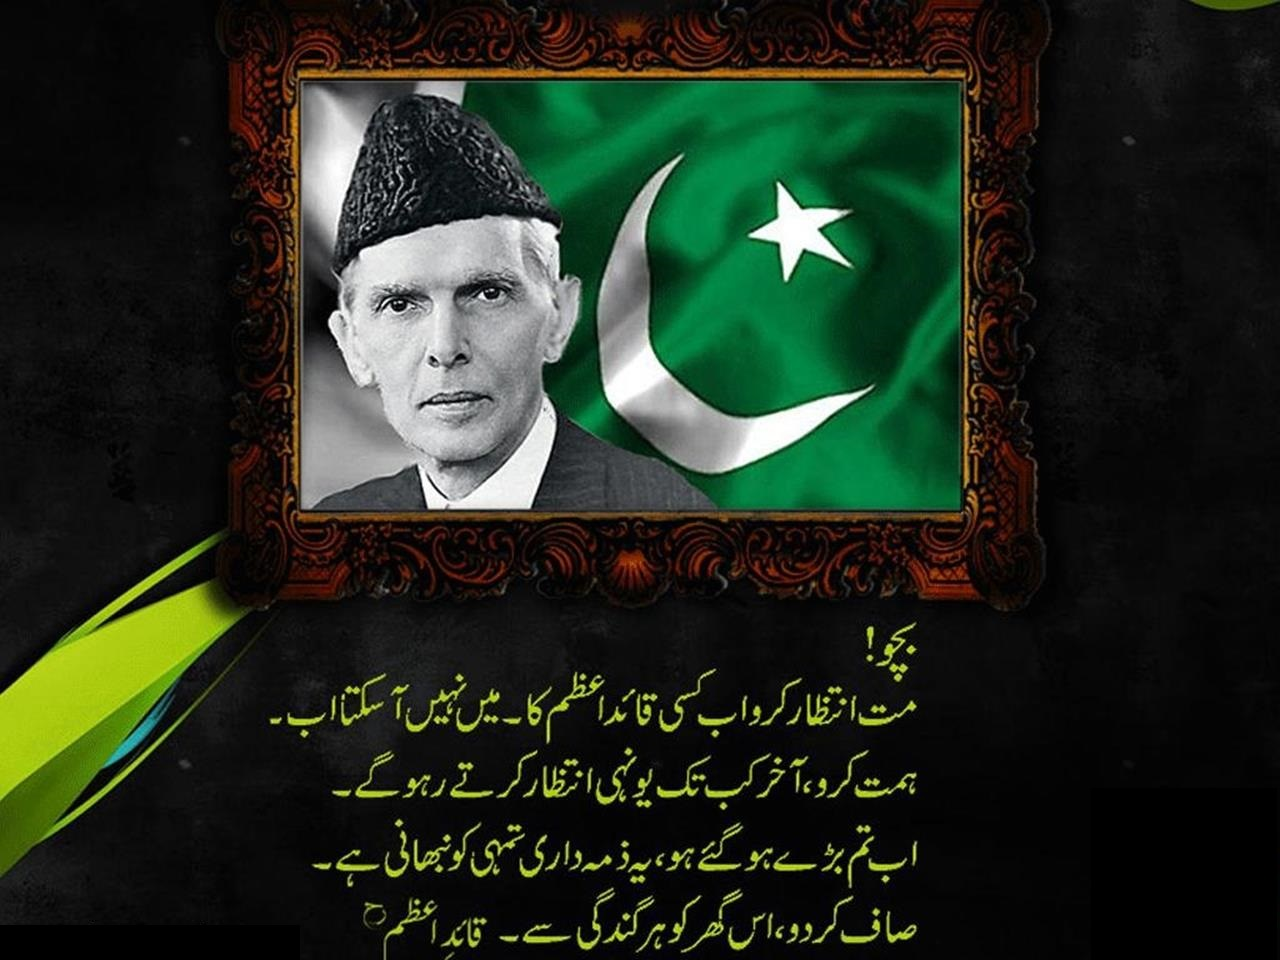 Best pictures of quaid e azam DFSK C37 2018 Prices in Pakistan, Pictures and Reviews